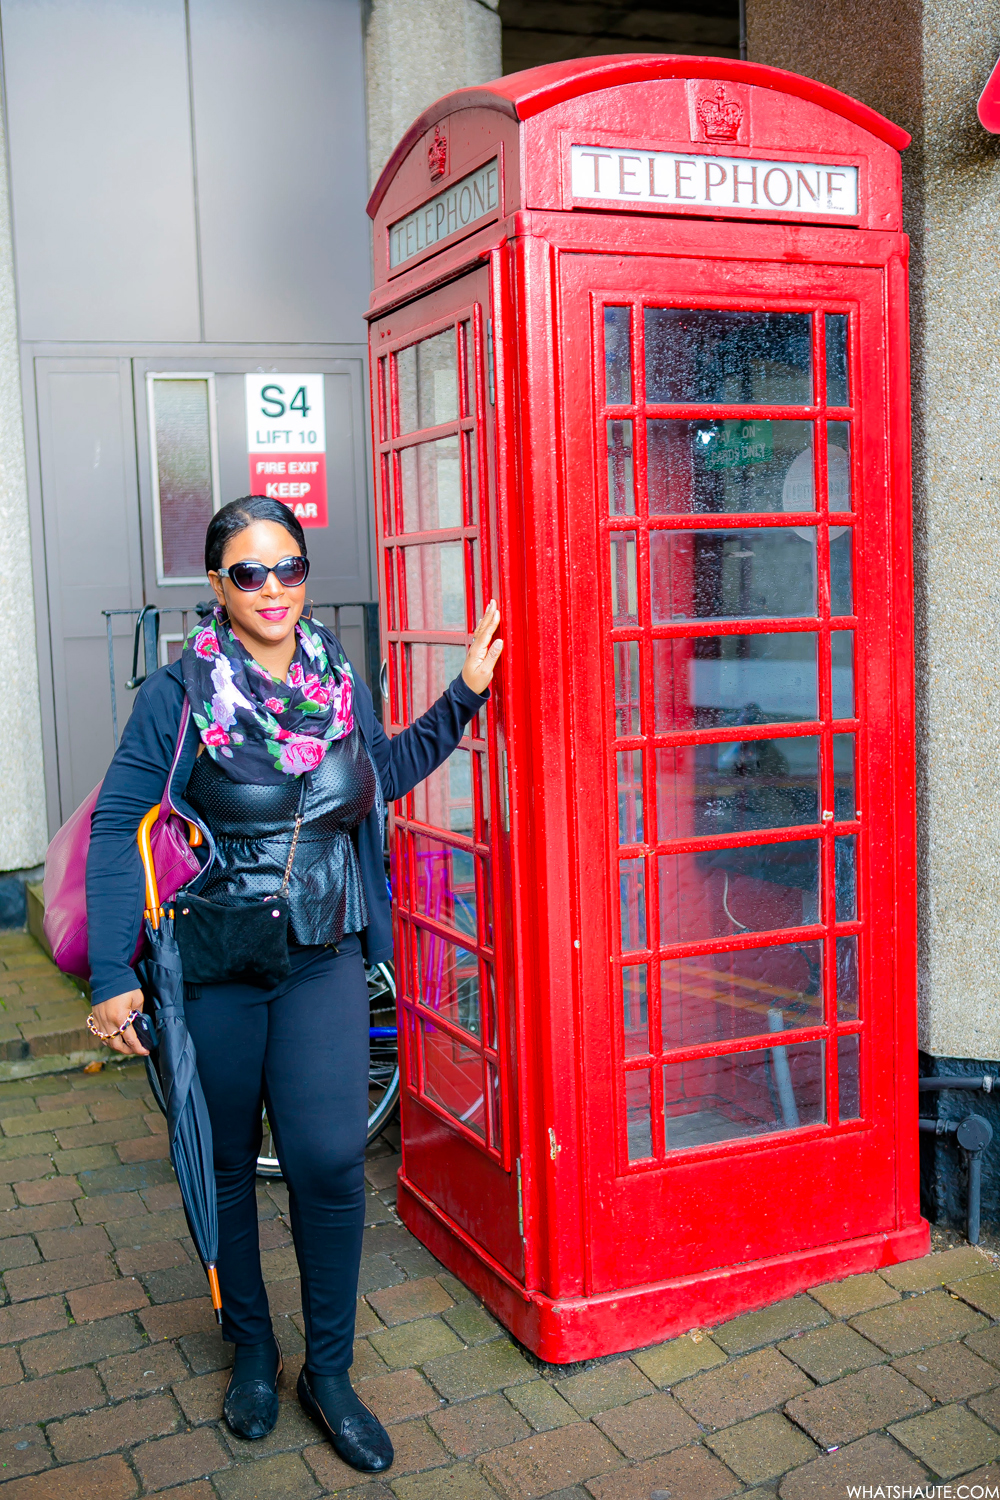 48 Hours in London, Me at a red telephone booth - London, England, What's Haute in the World